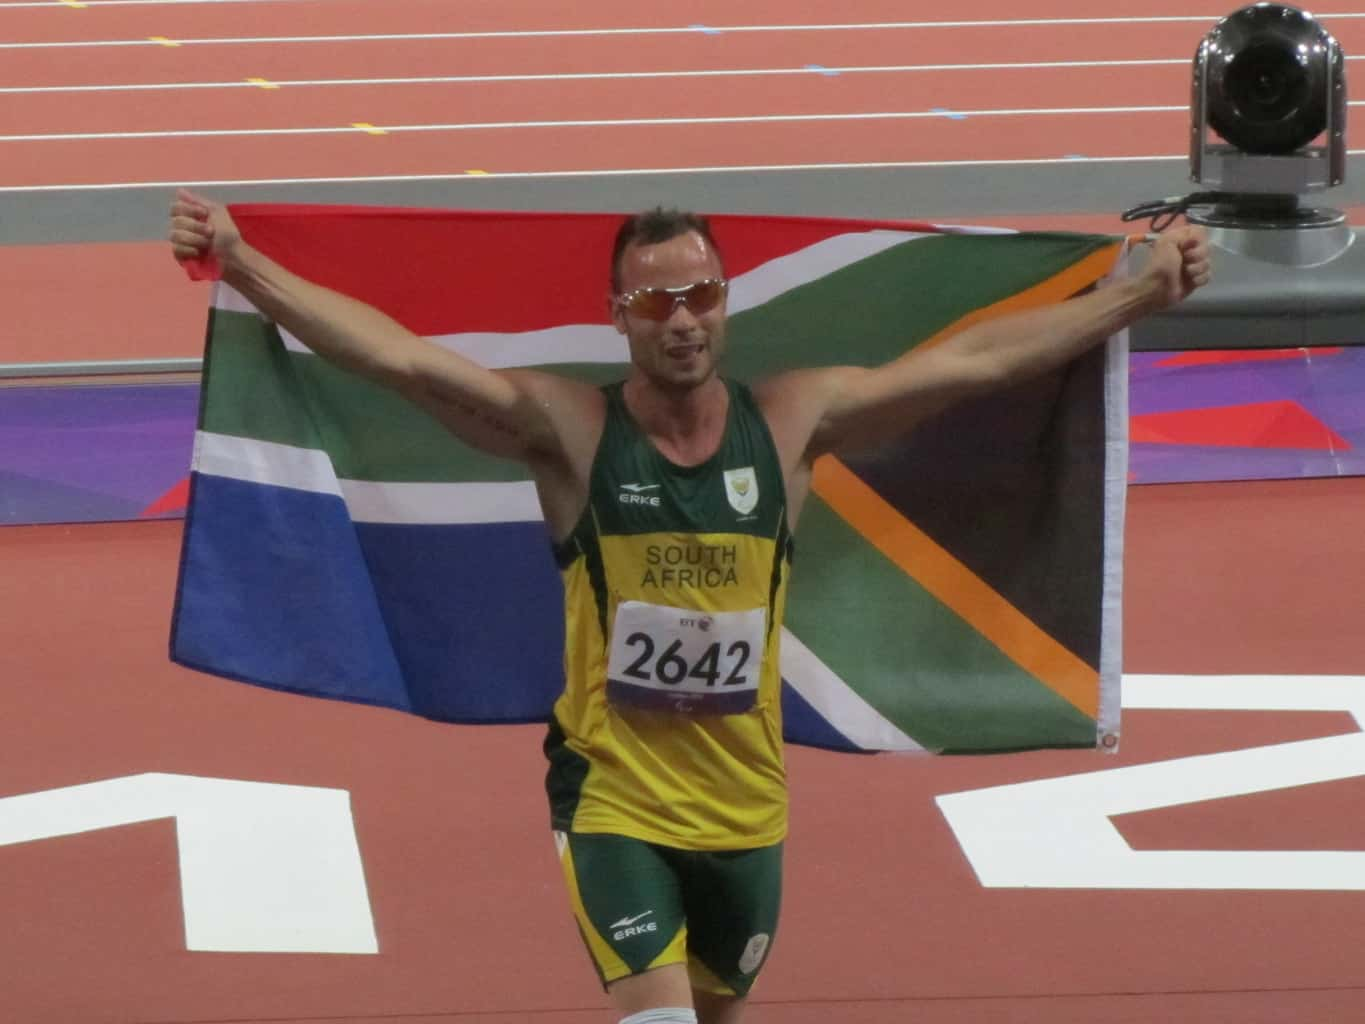 Oscar Pistorious celebrating with a South African flag